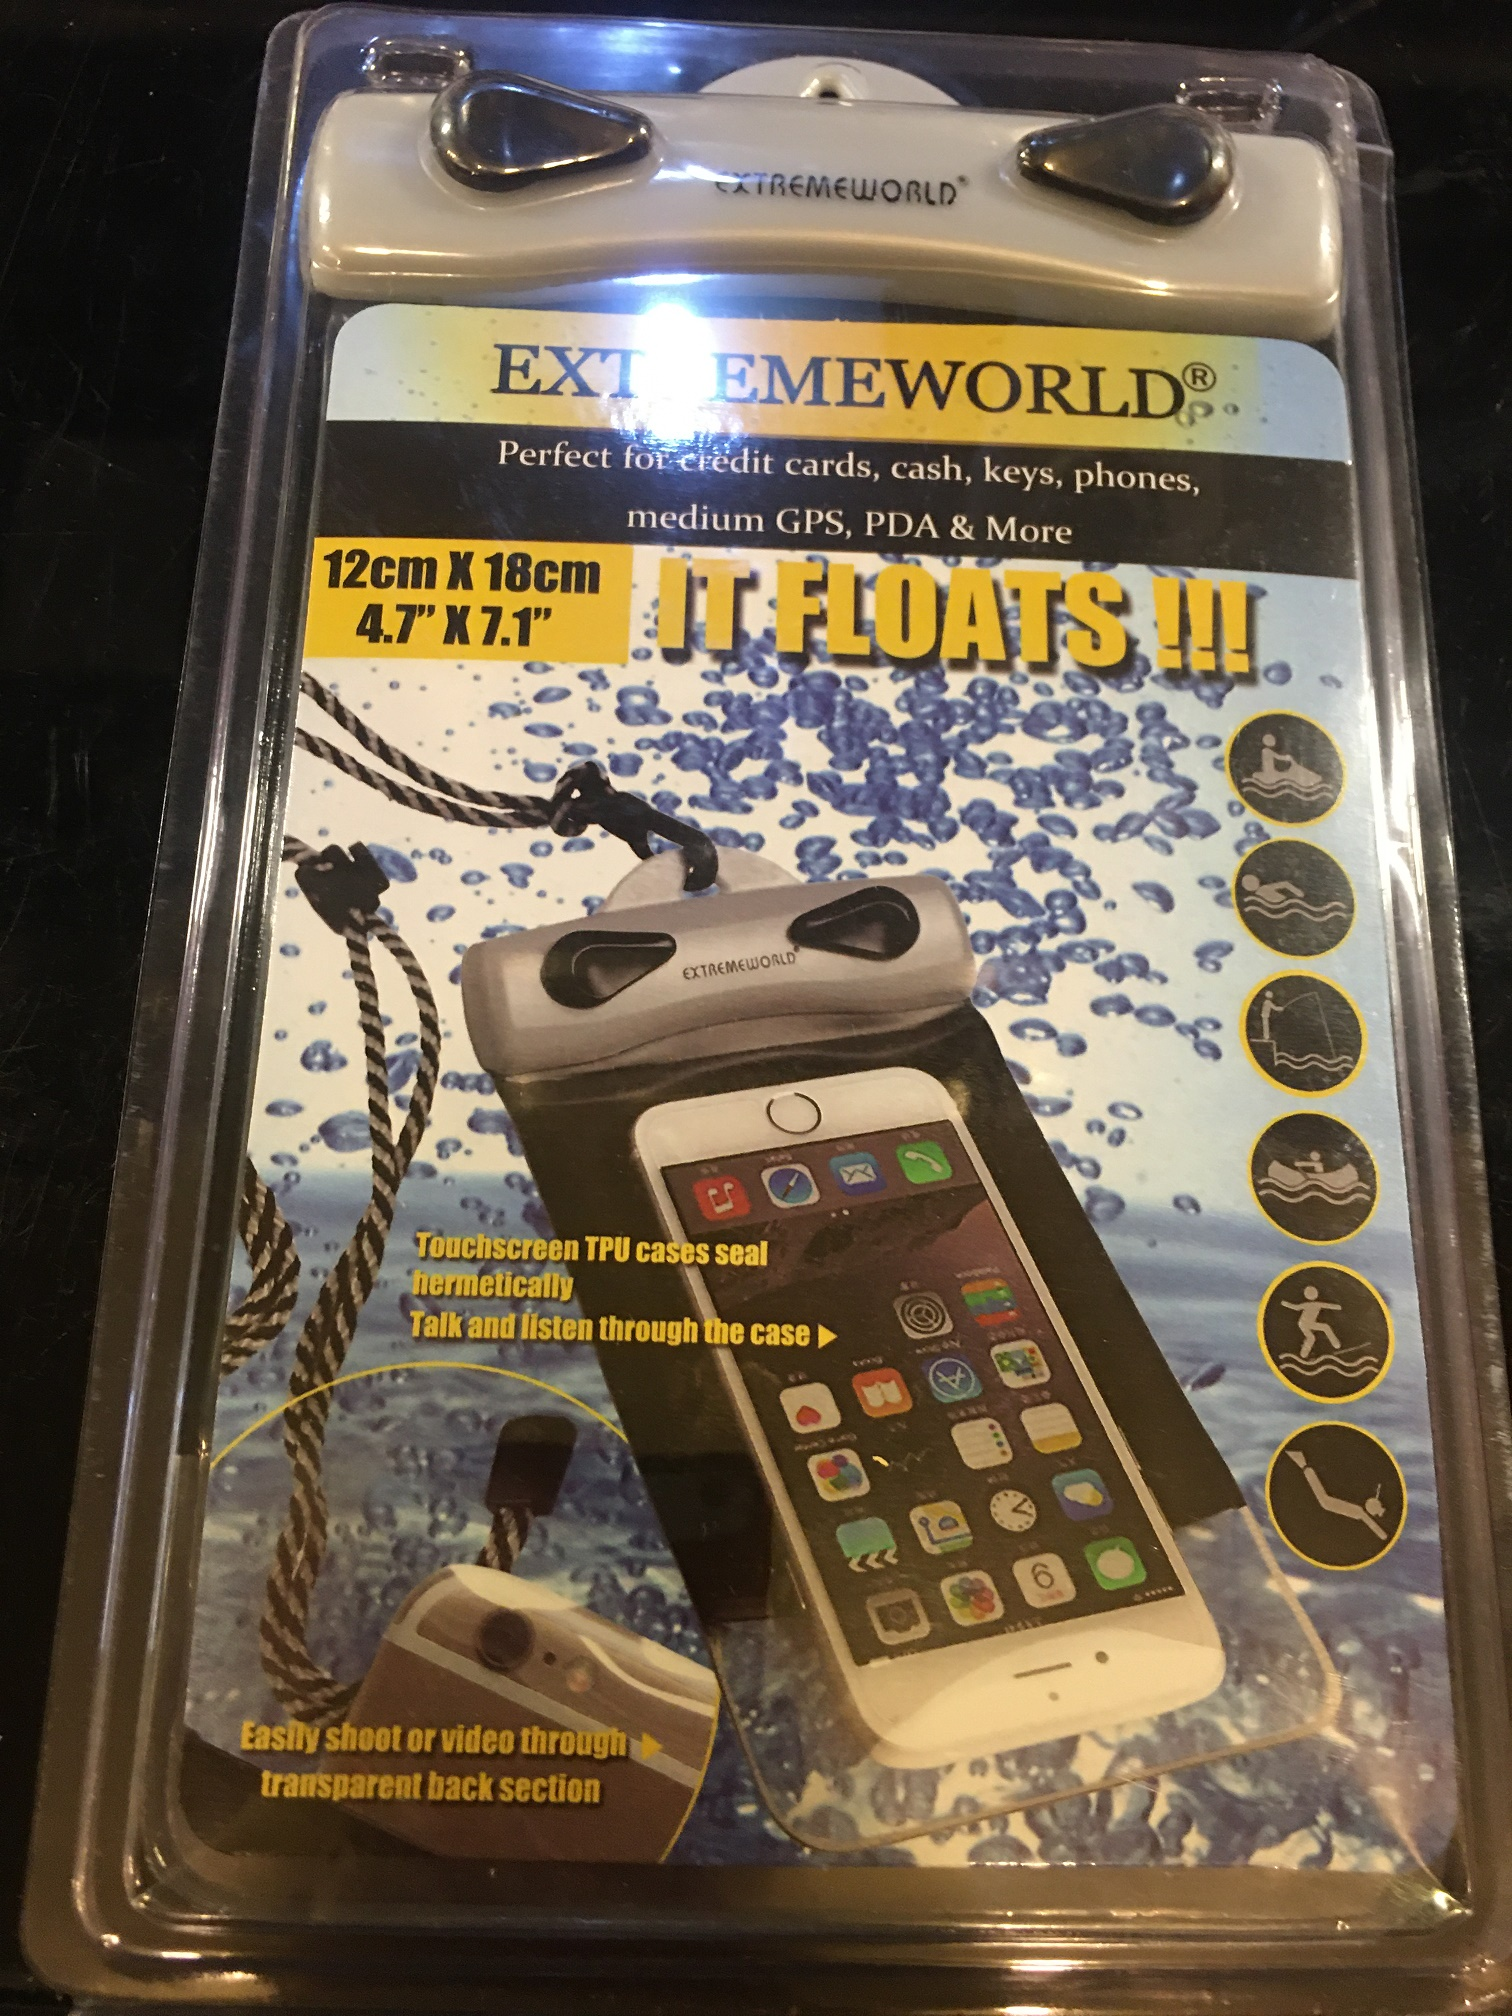 EXTREMEWORLD waterproof case for smartphones, wallet, cash, anything